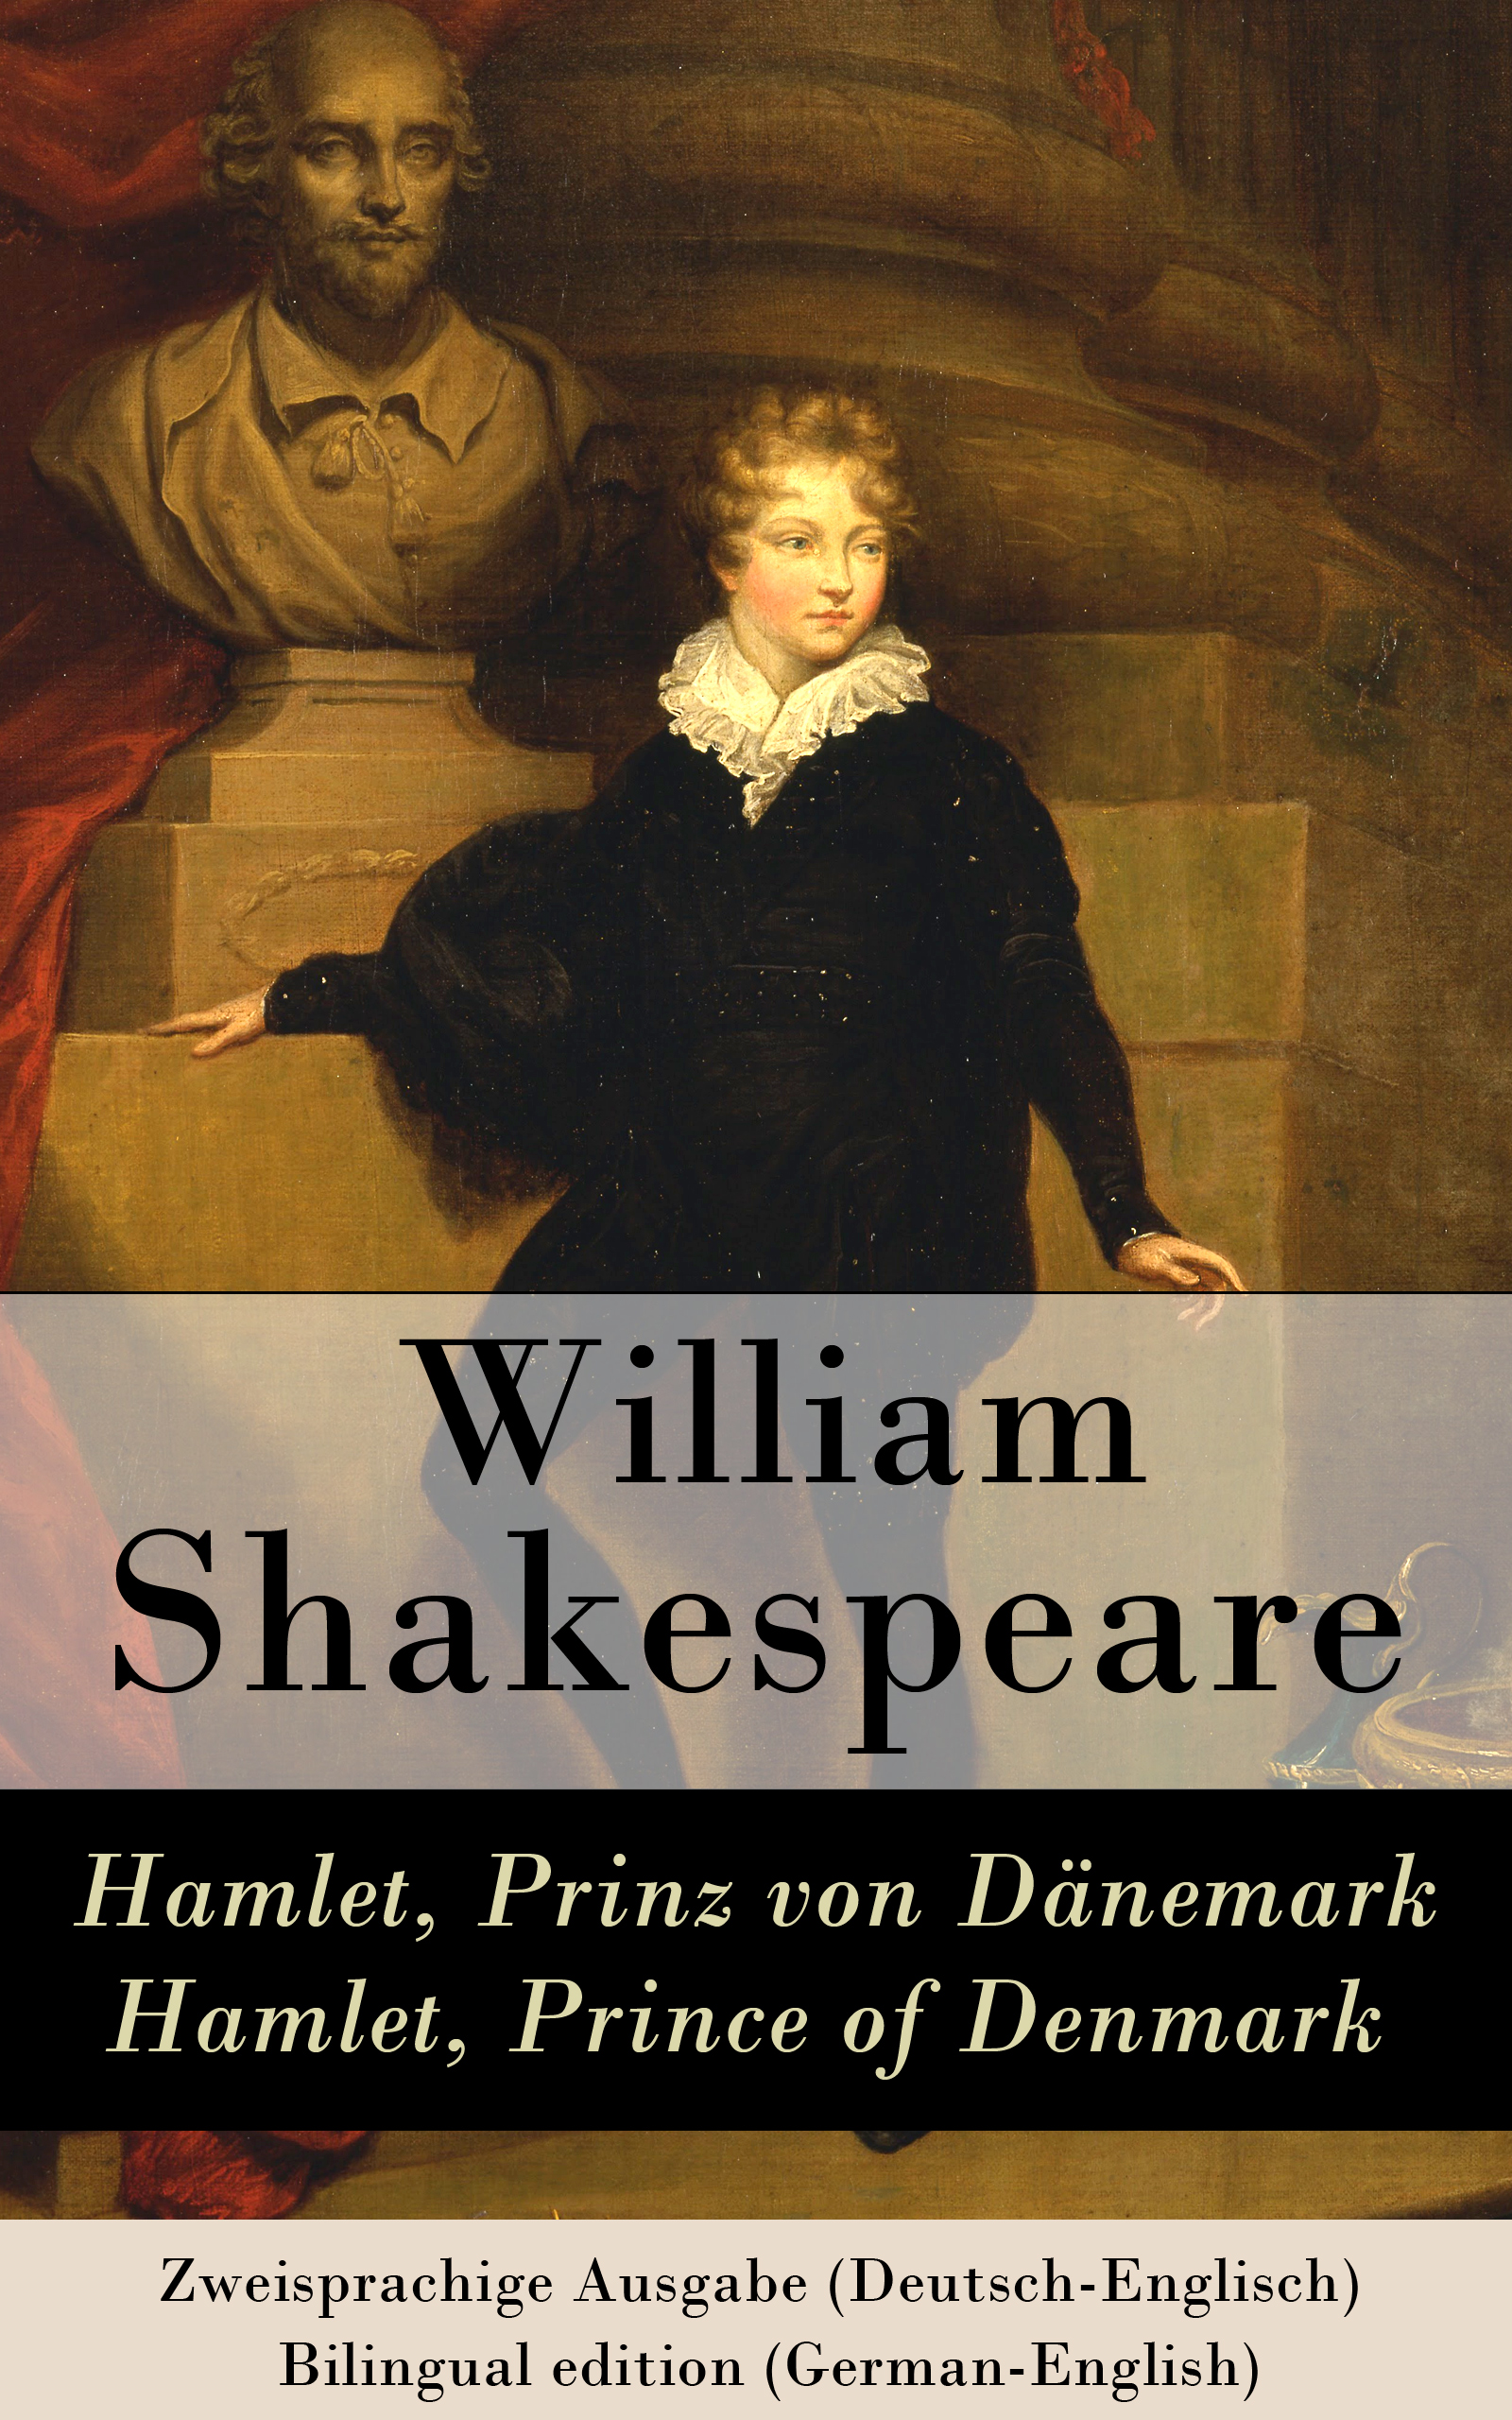 hamlet prinz von danemark hamlet prince of denmark zweisprachige ausgabe deutsch englisch bilingual edition german english